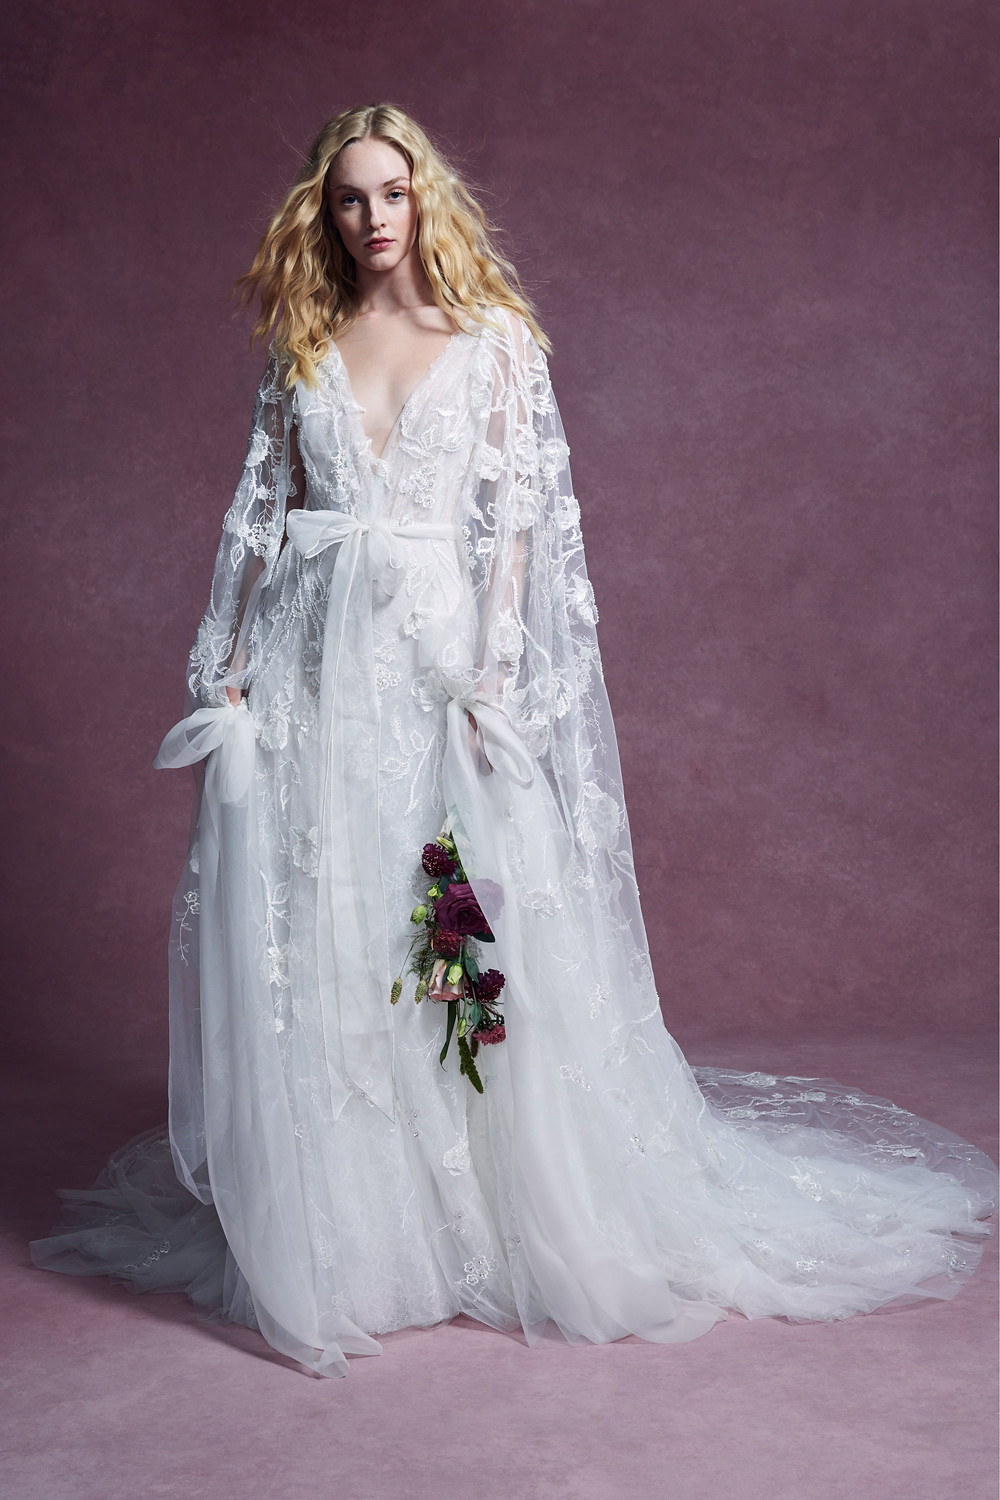 A Marchesa 2020 sheath style, tulle wedding dress that is long and flowy and has flowers and embroidery